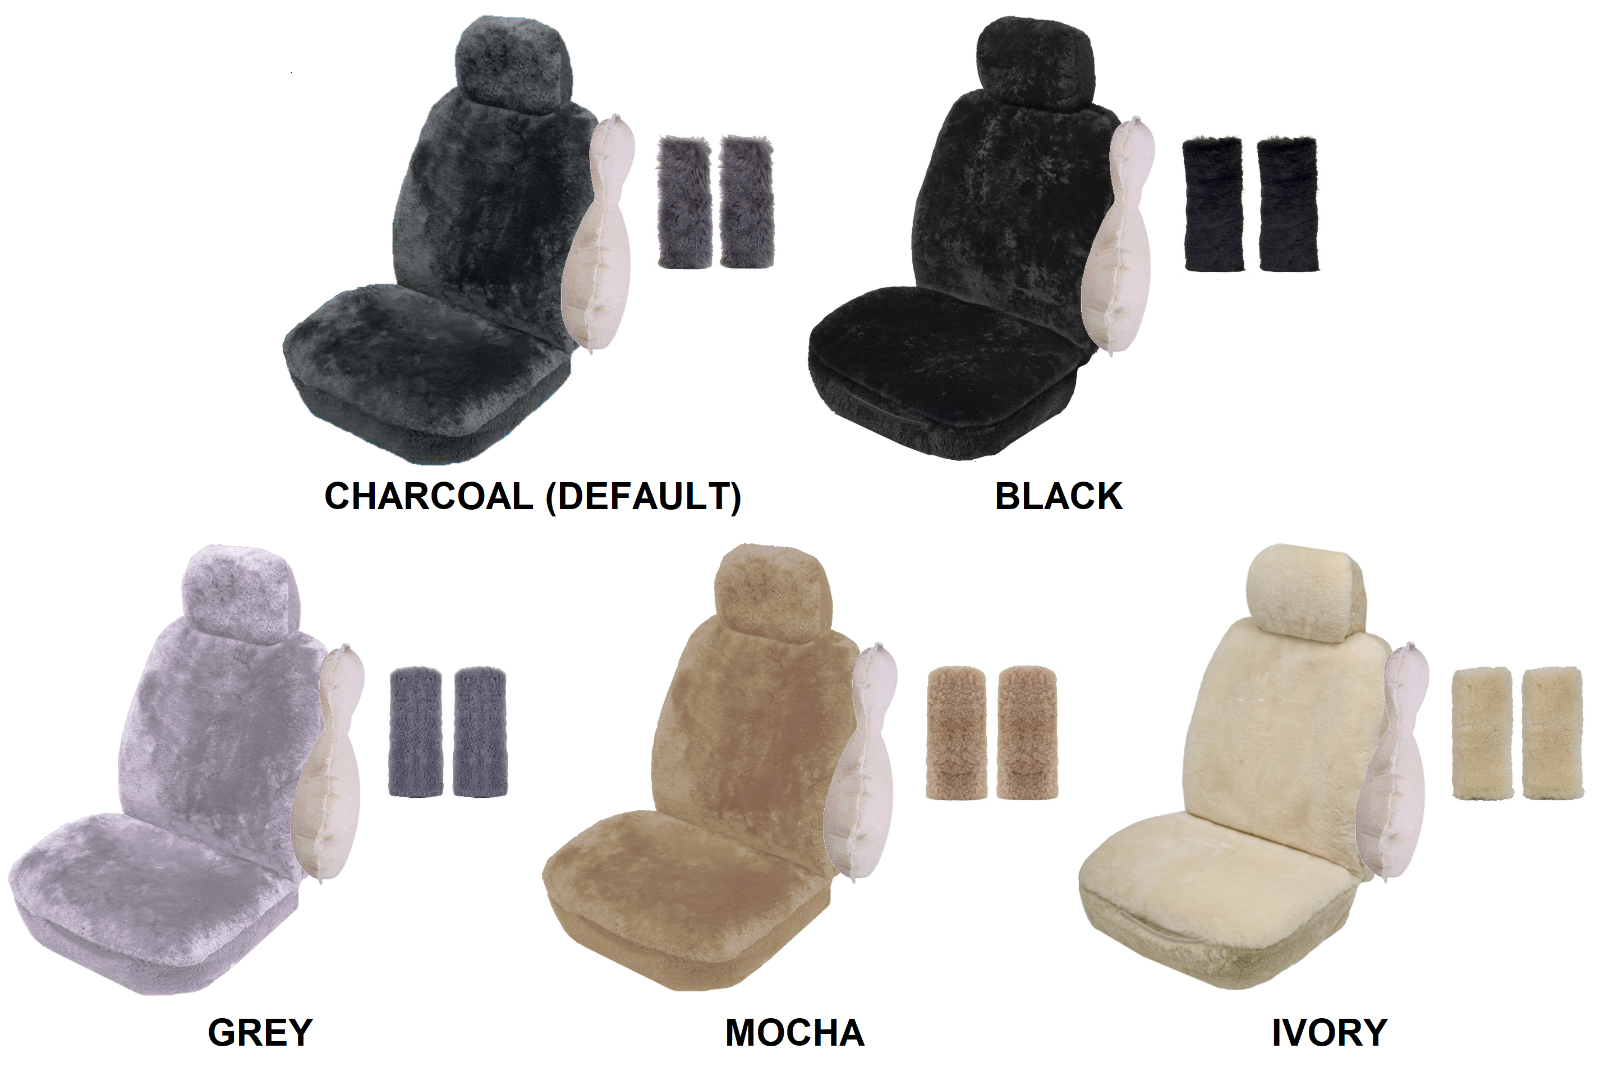 SINGLE 20mm SHEEPSKIN SEAT COVER PACK FOR FORD ESCAPE FWD (PK 3)